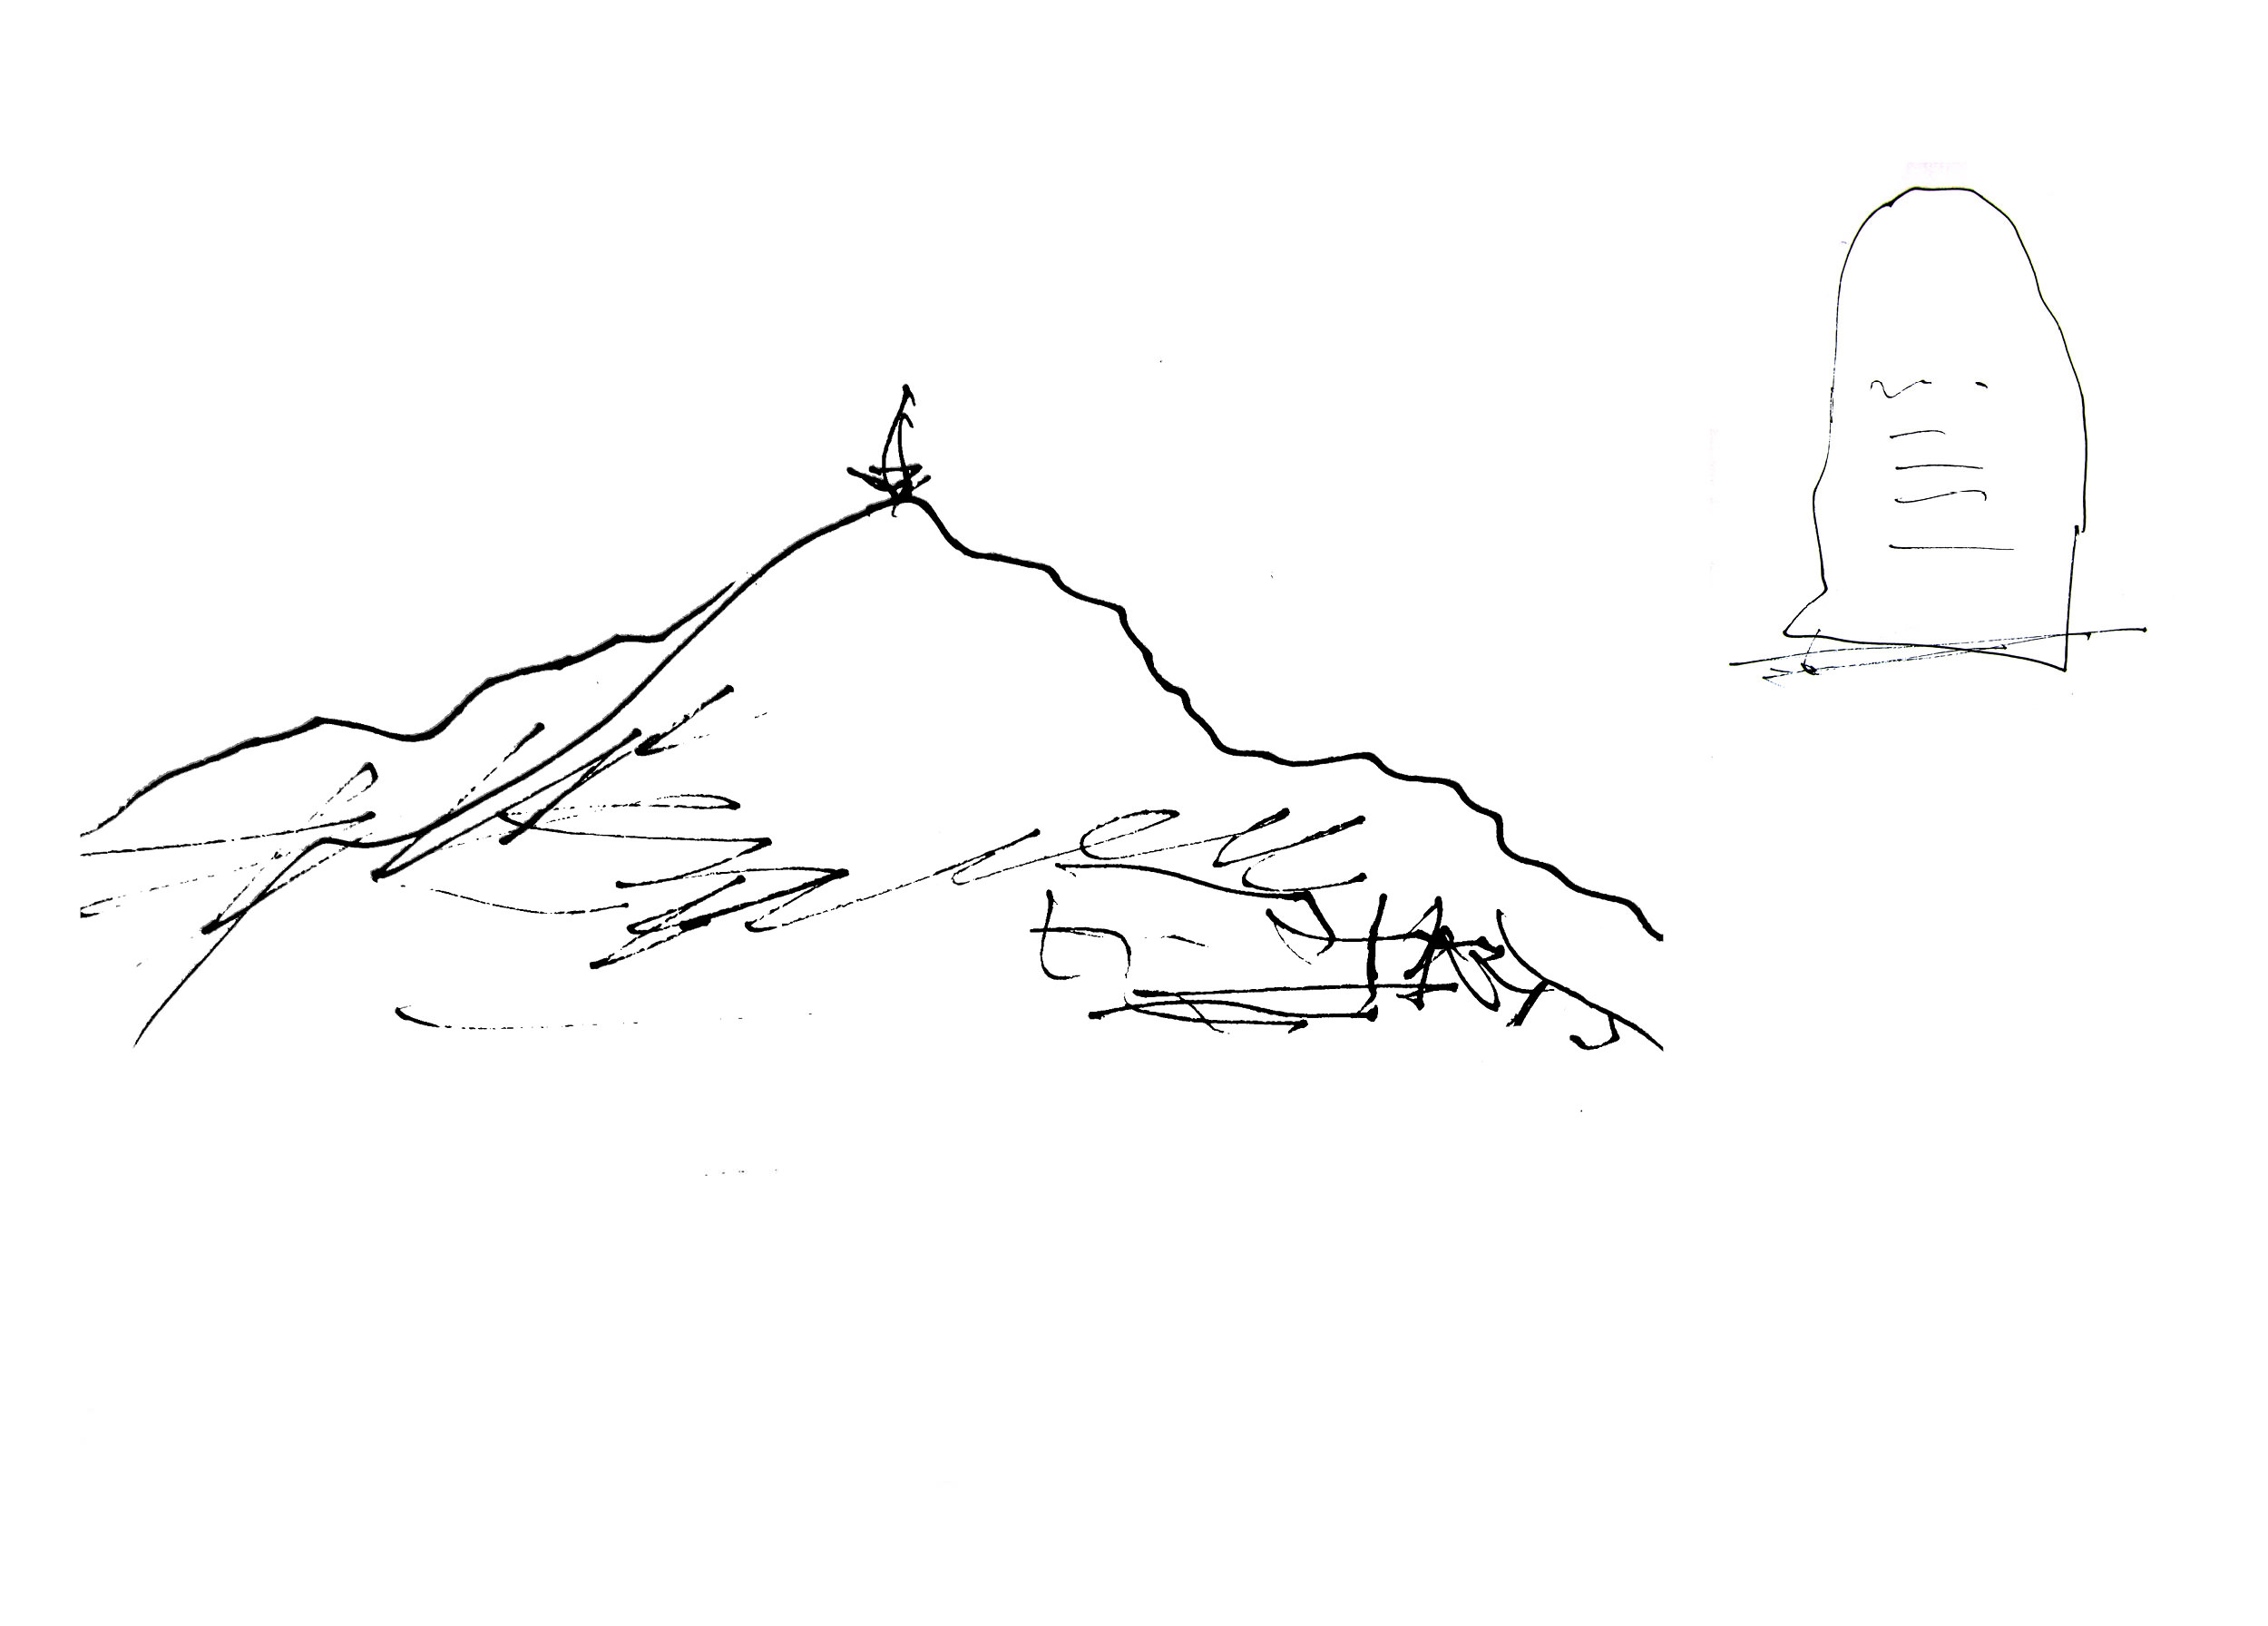 1. The initial assignment was for a star on Buzludzha Peak. (Sketch by architect Georgi Stoilov, 26th June 2014)